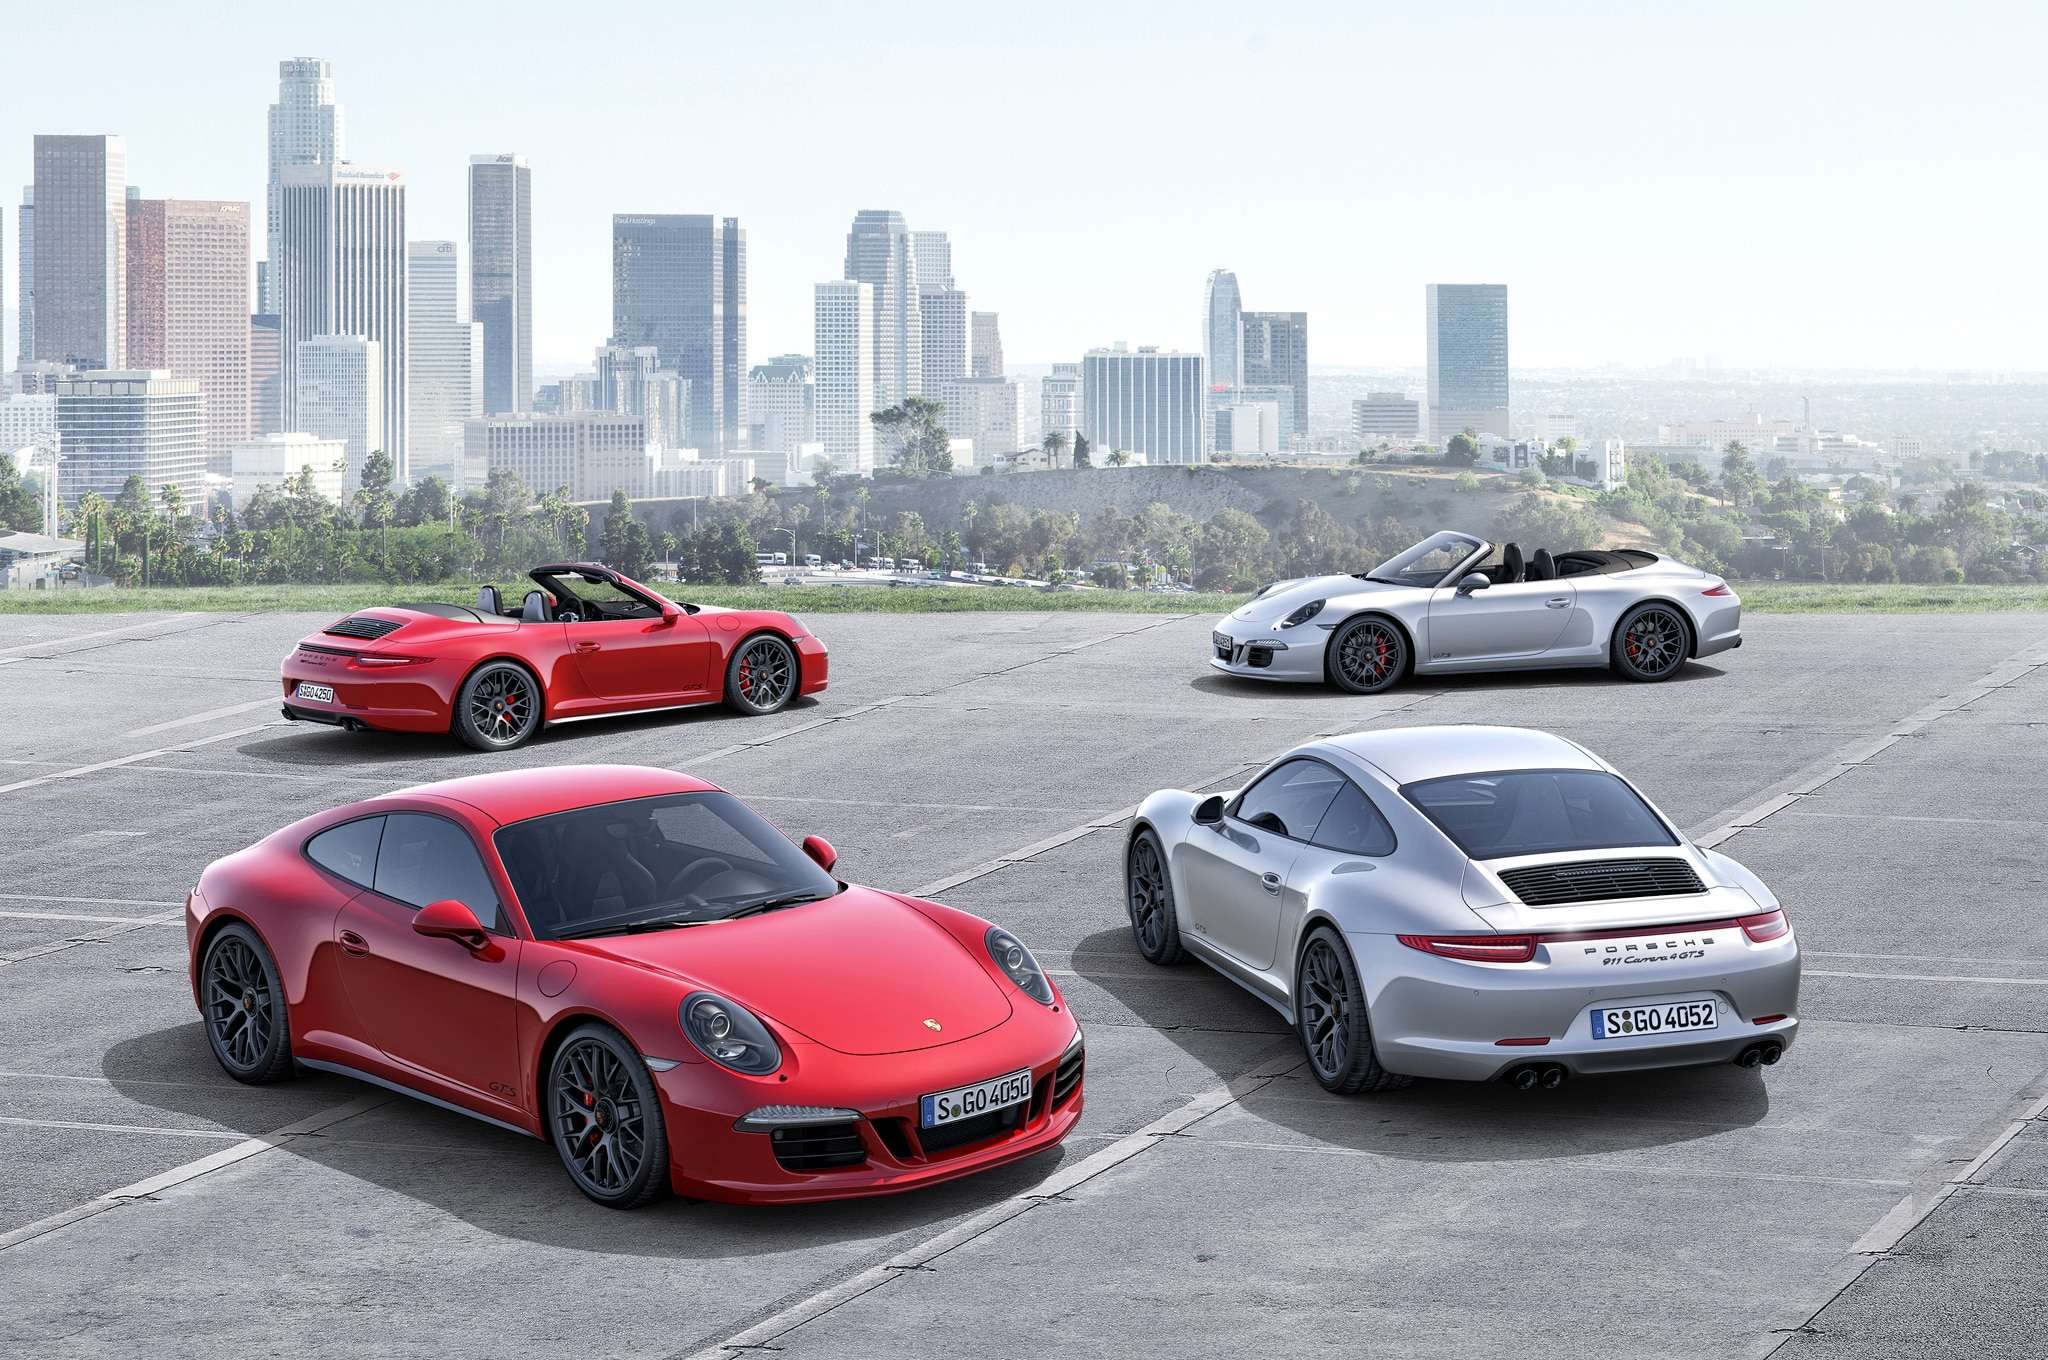 100 porsche models 7 most iconic porsche models of all time